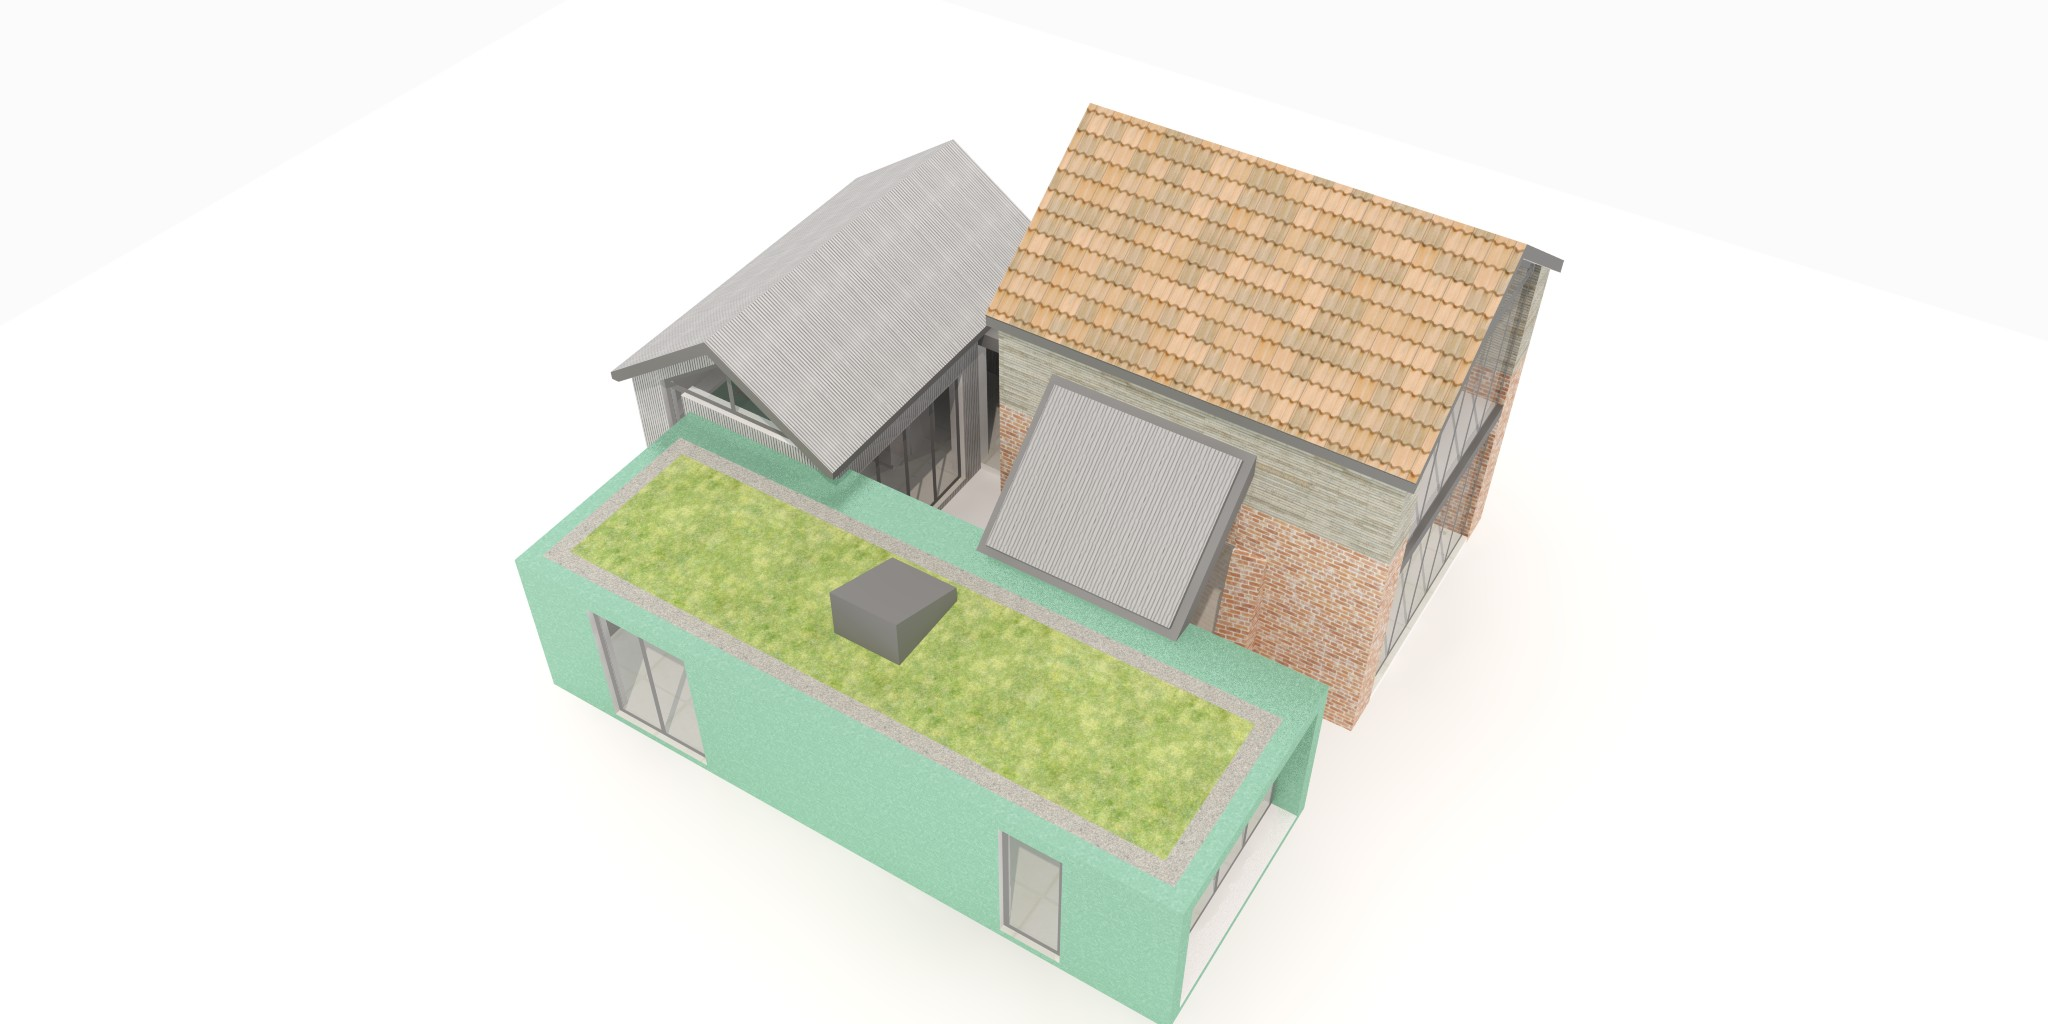 Wild flower roof and solar thermal panels